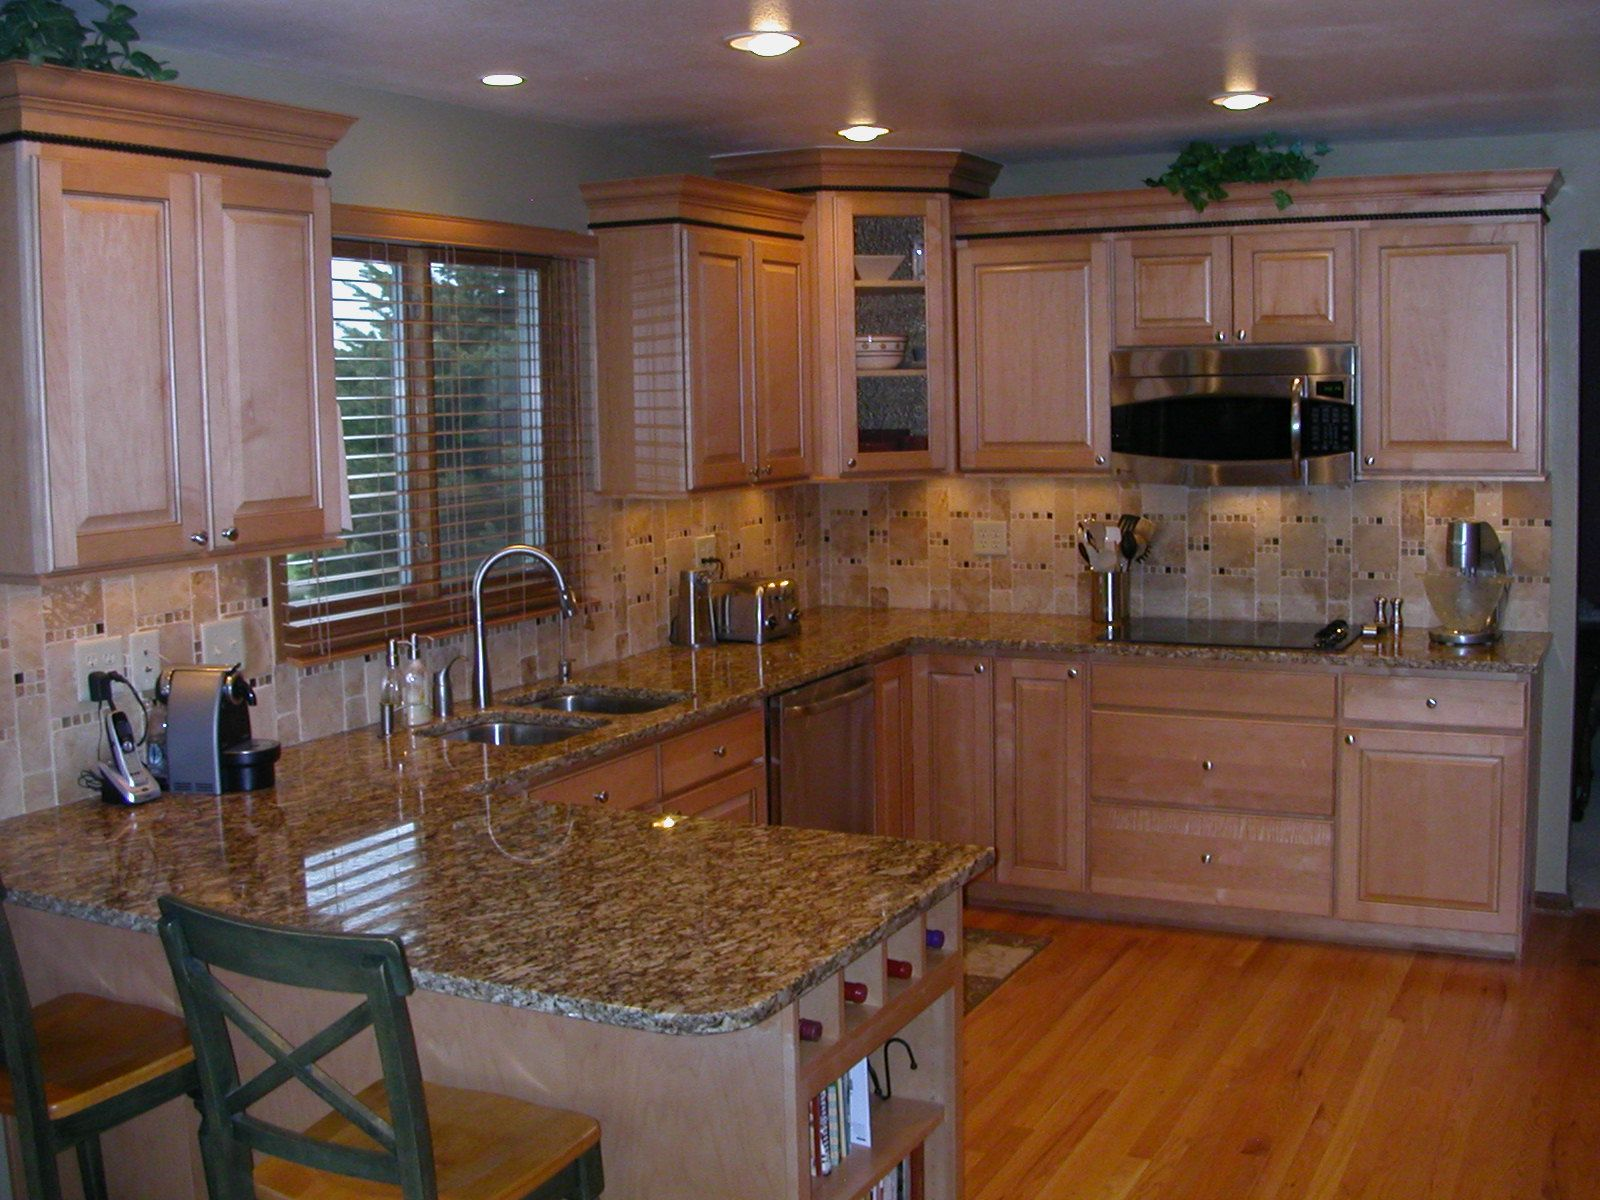 Remodeled Kitchen in natural maple cabinets | Kitchen ... on Backsplash For Maple Cabinets  id=77384